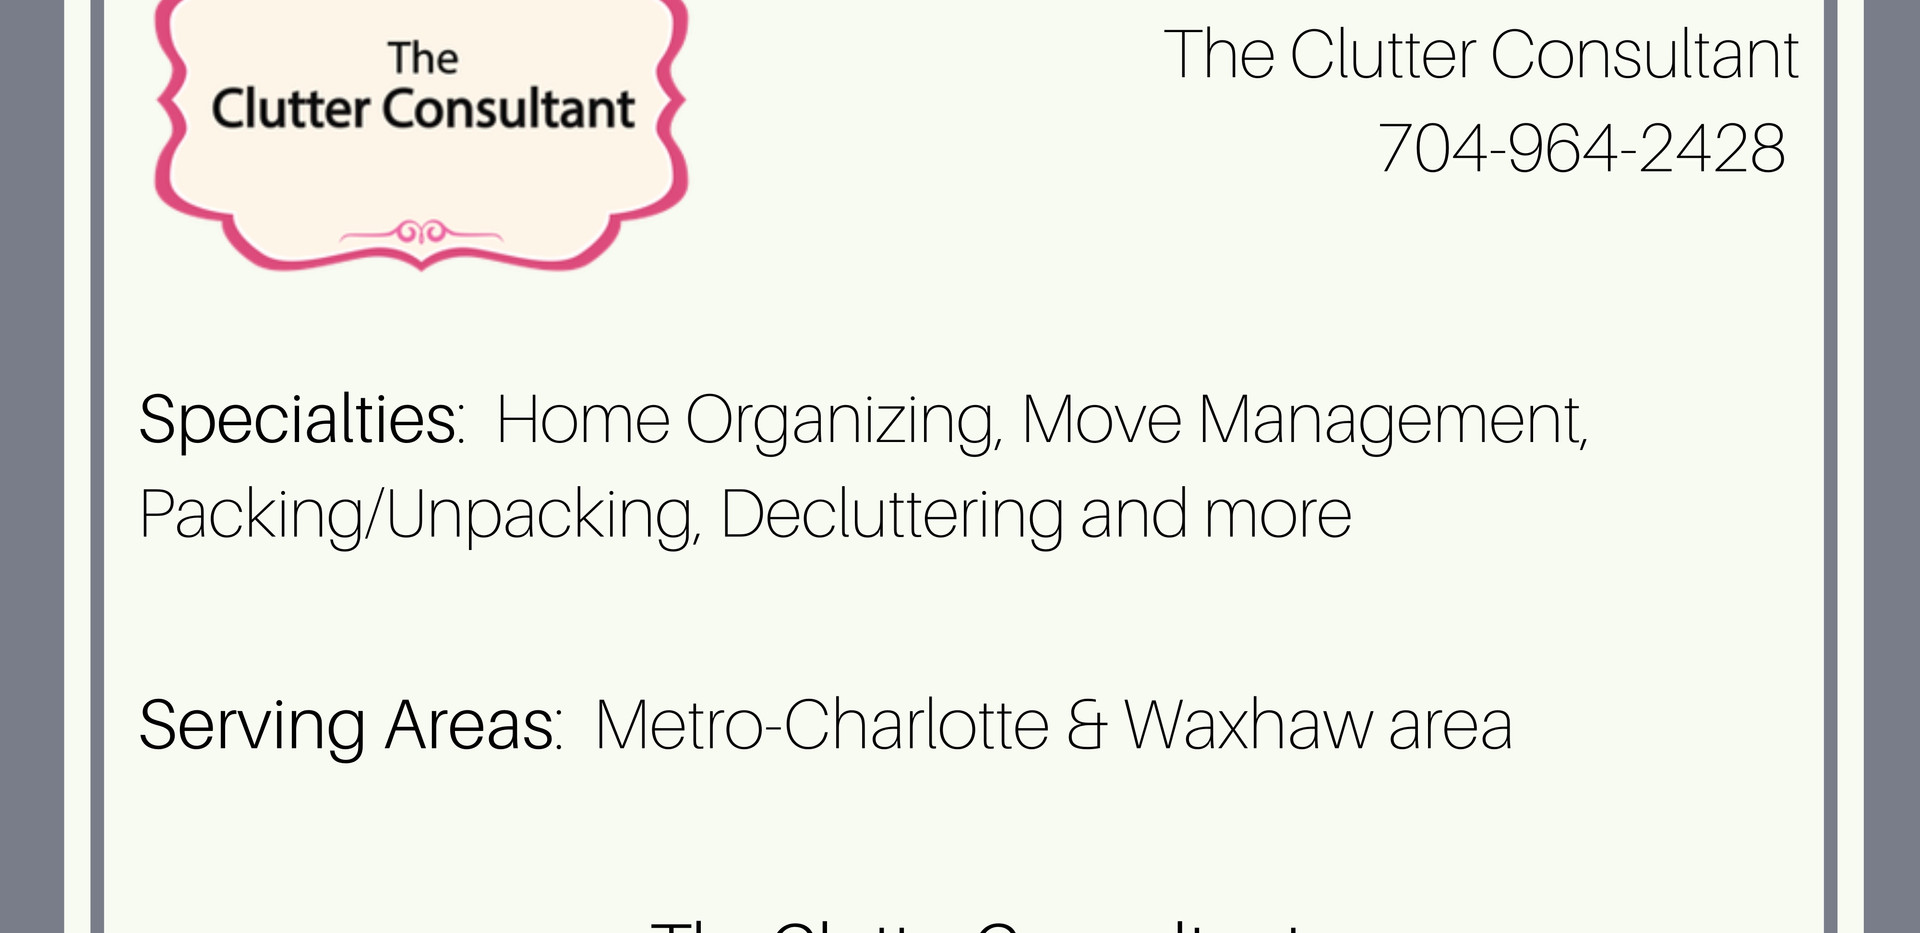 The Clutter Consultant